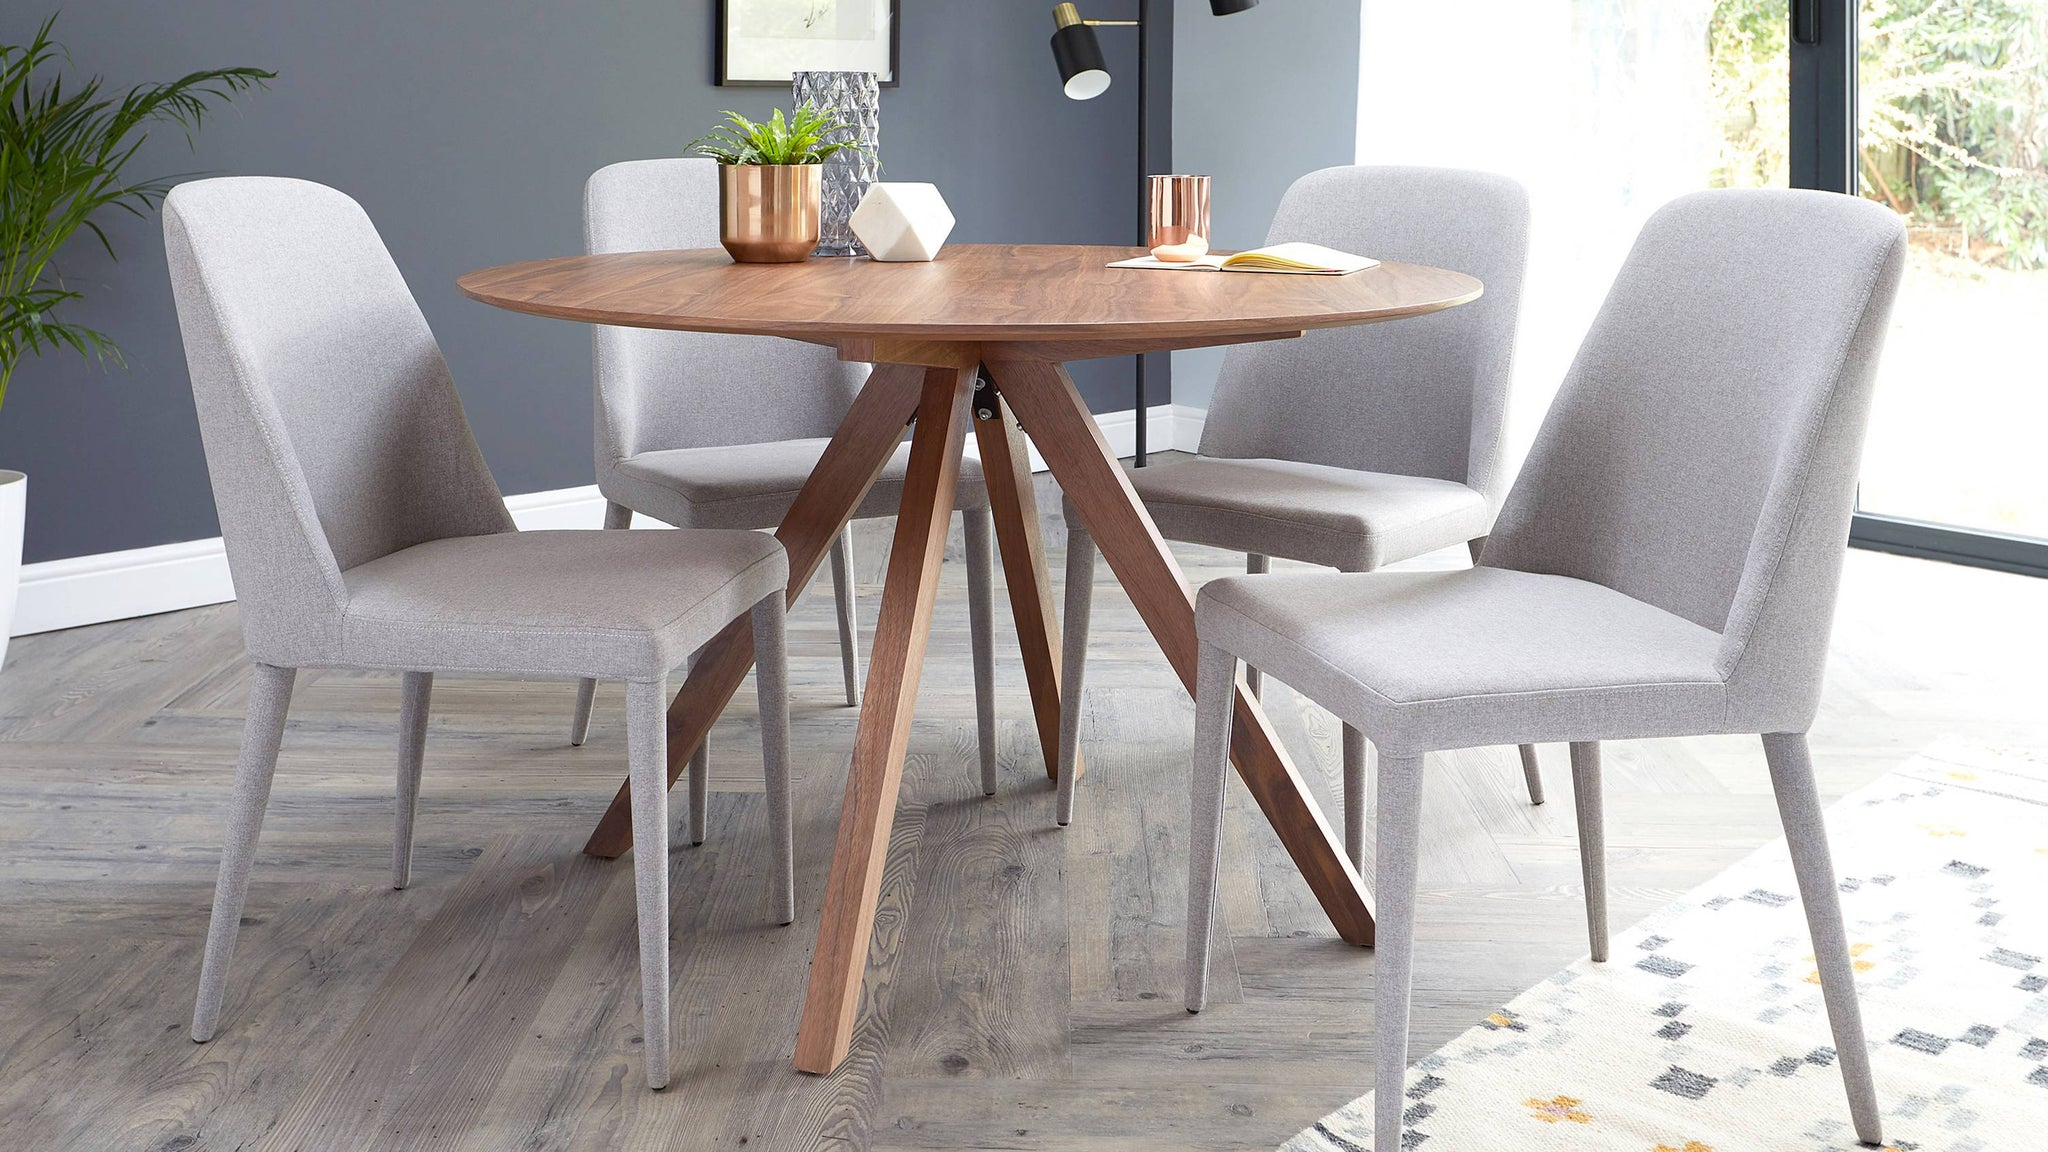 Buy comfortable fabric dining chairs